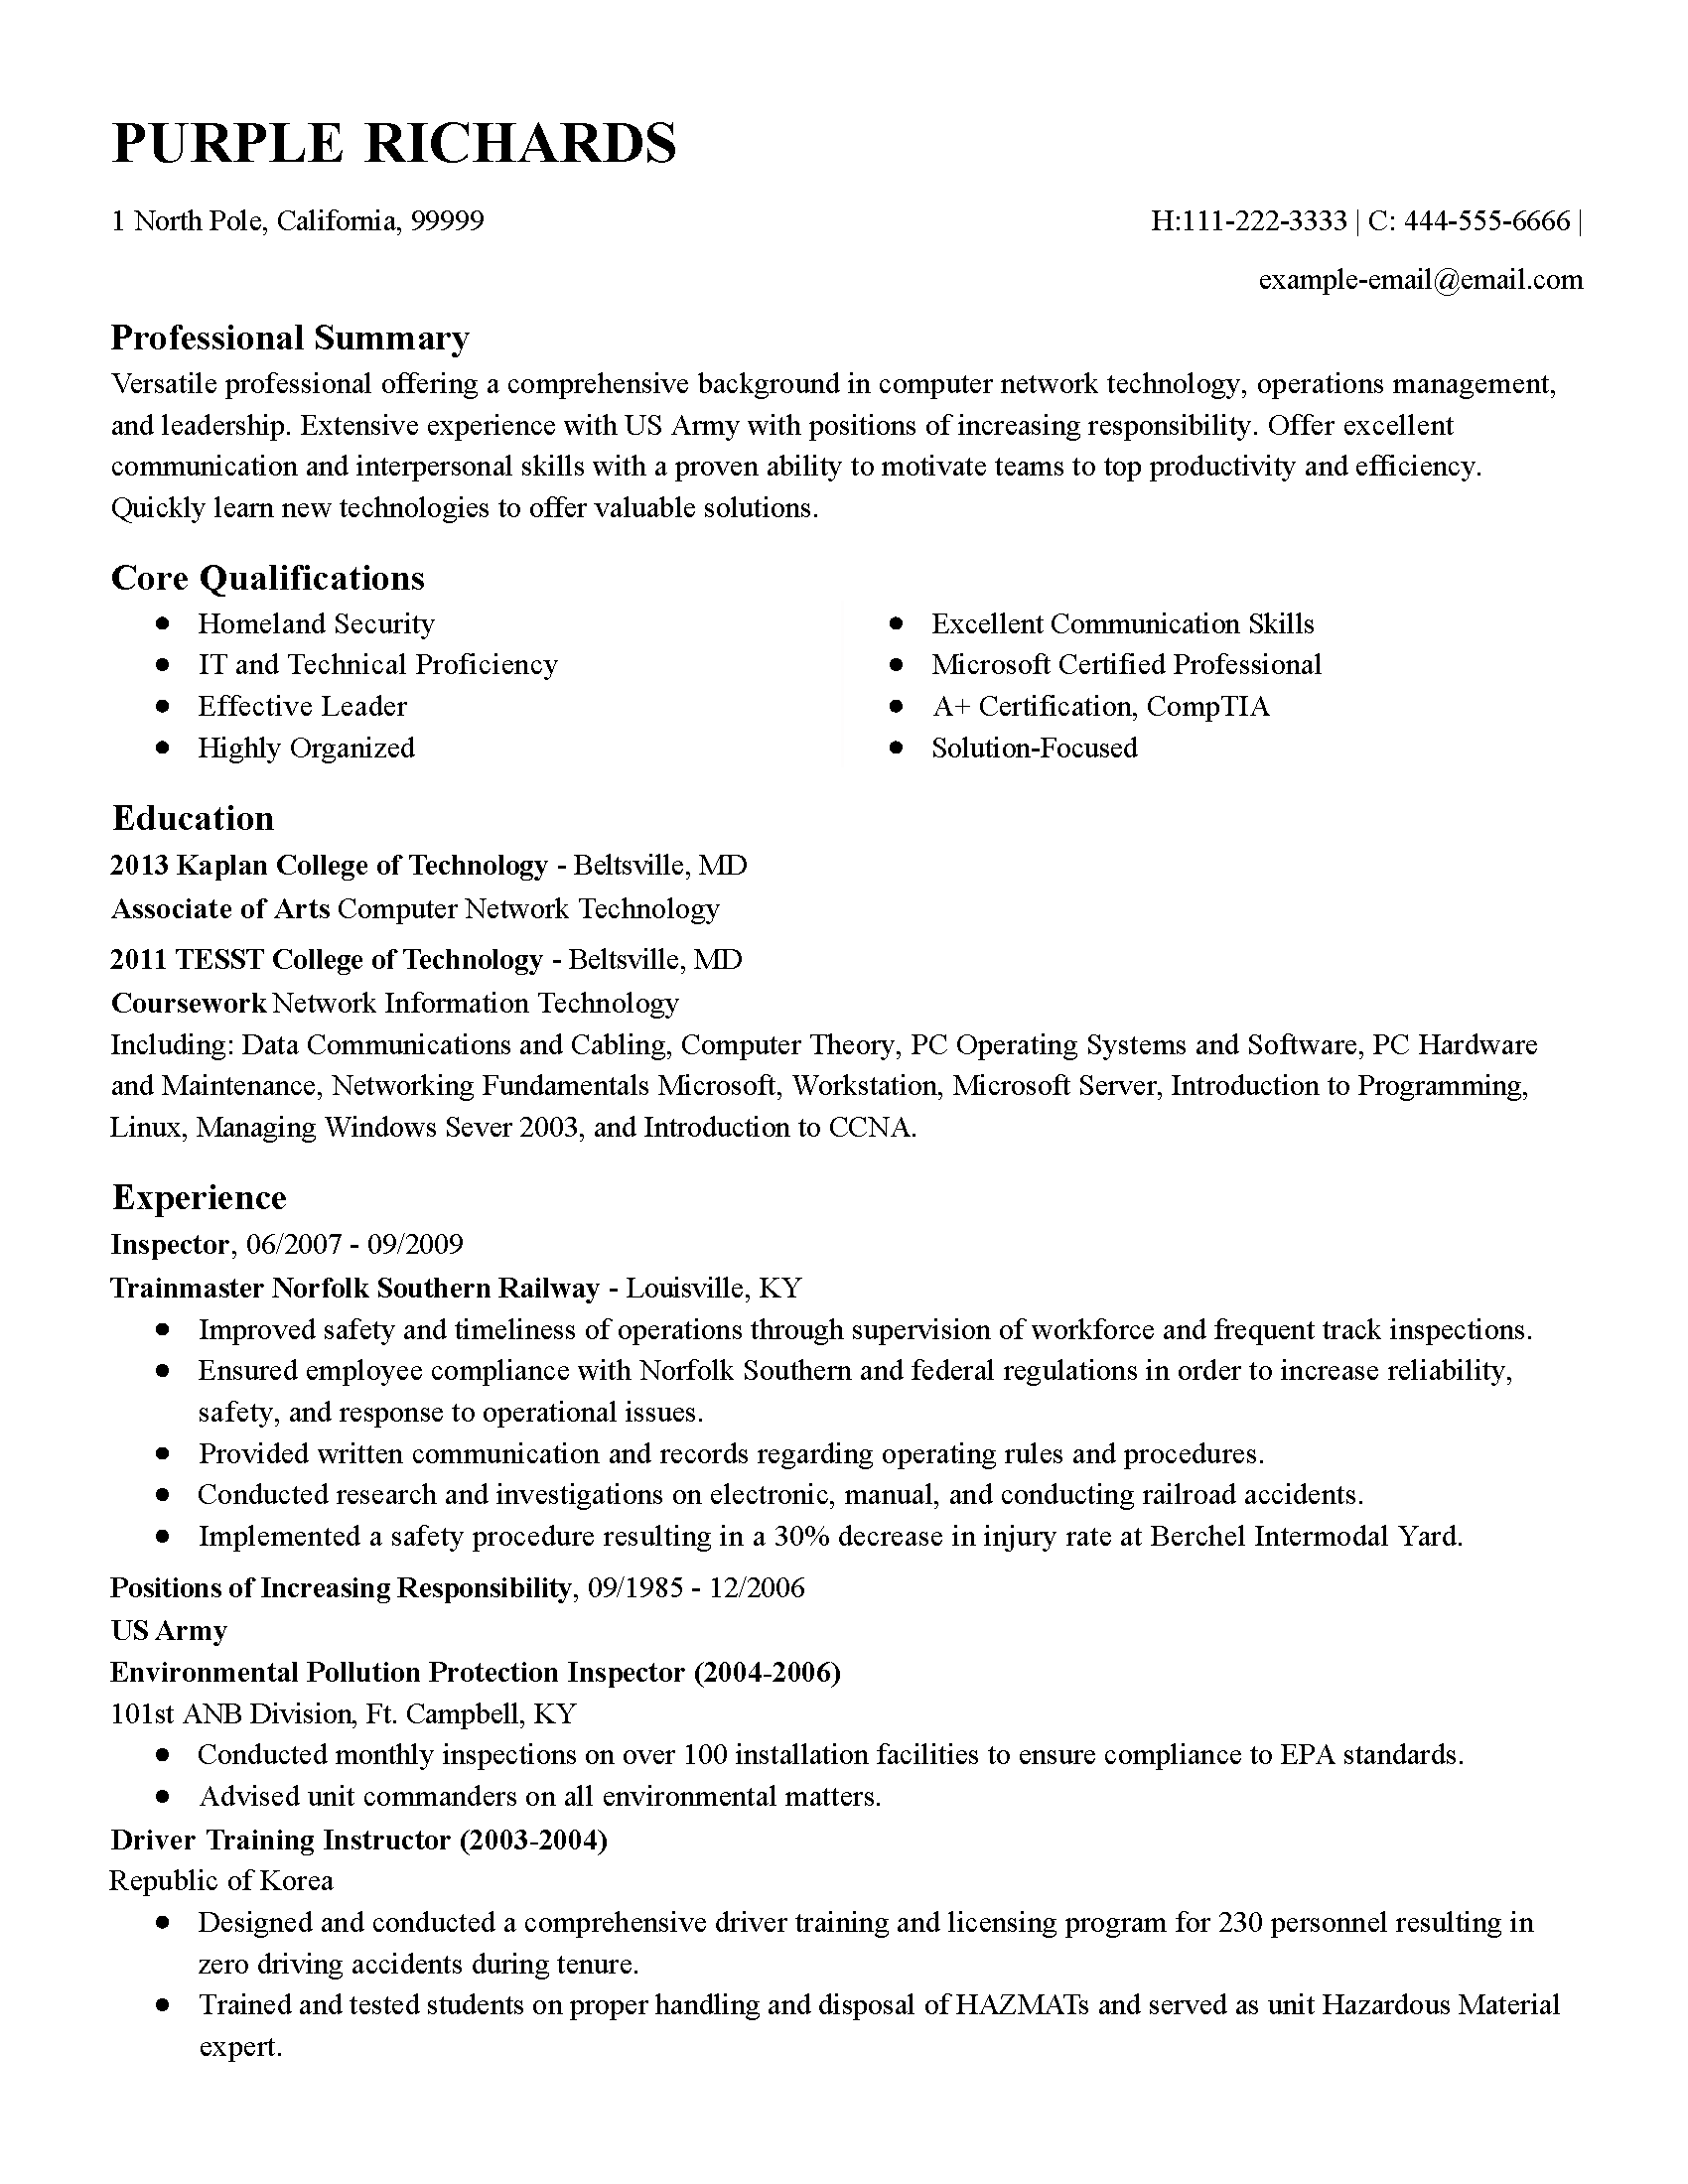 Legal Investigator Resume The Mason Law School Criminal Examples